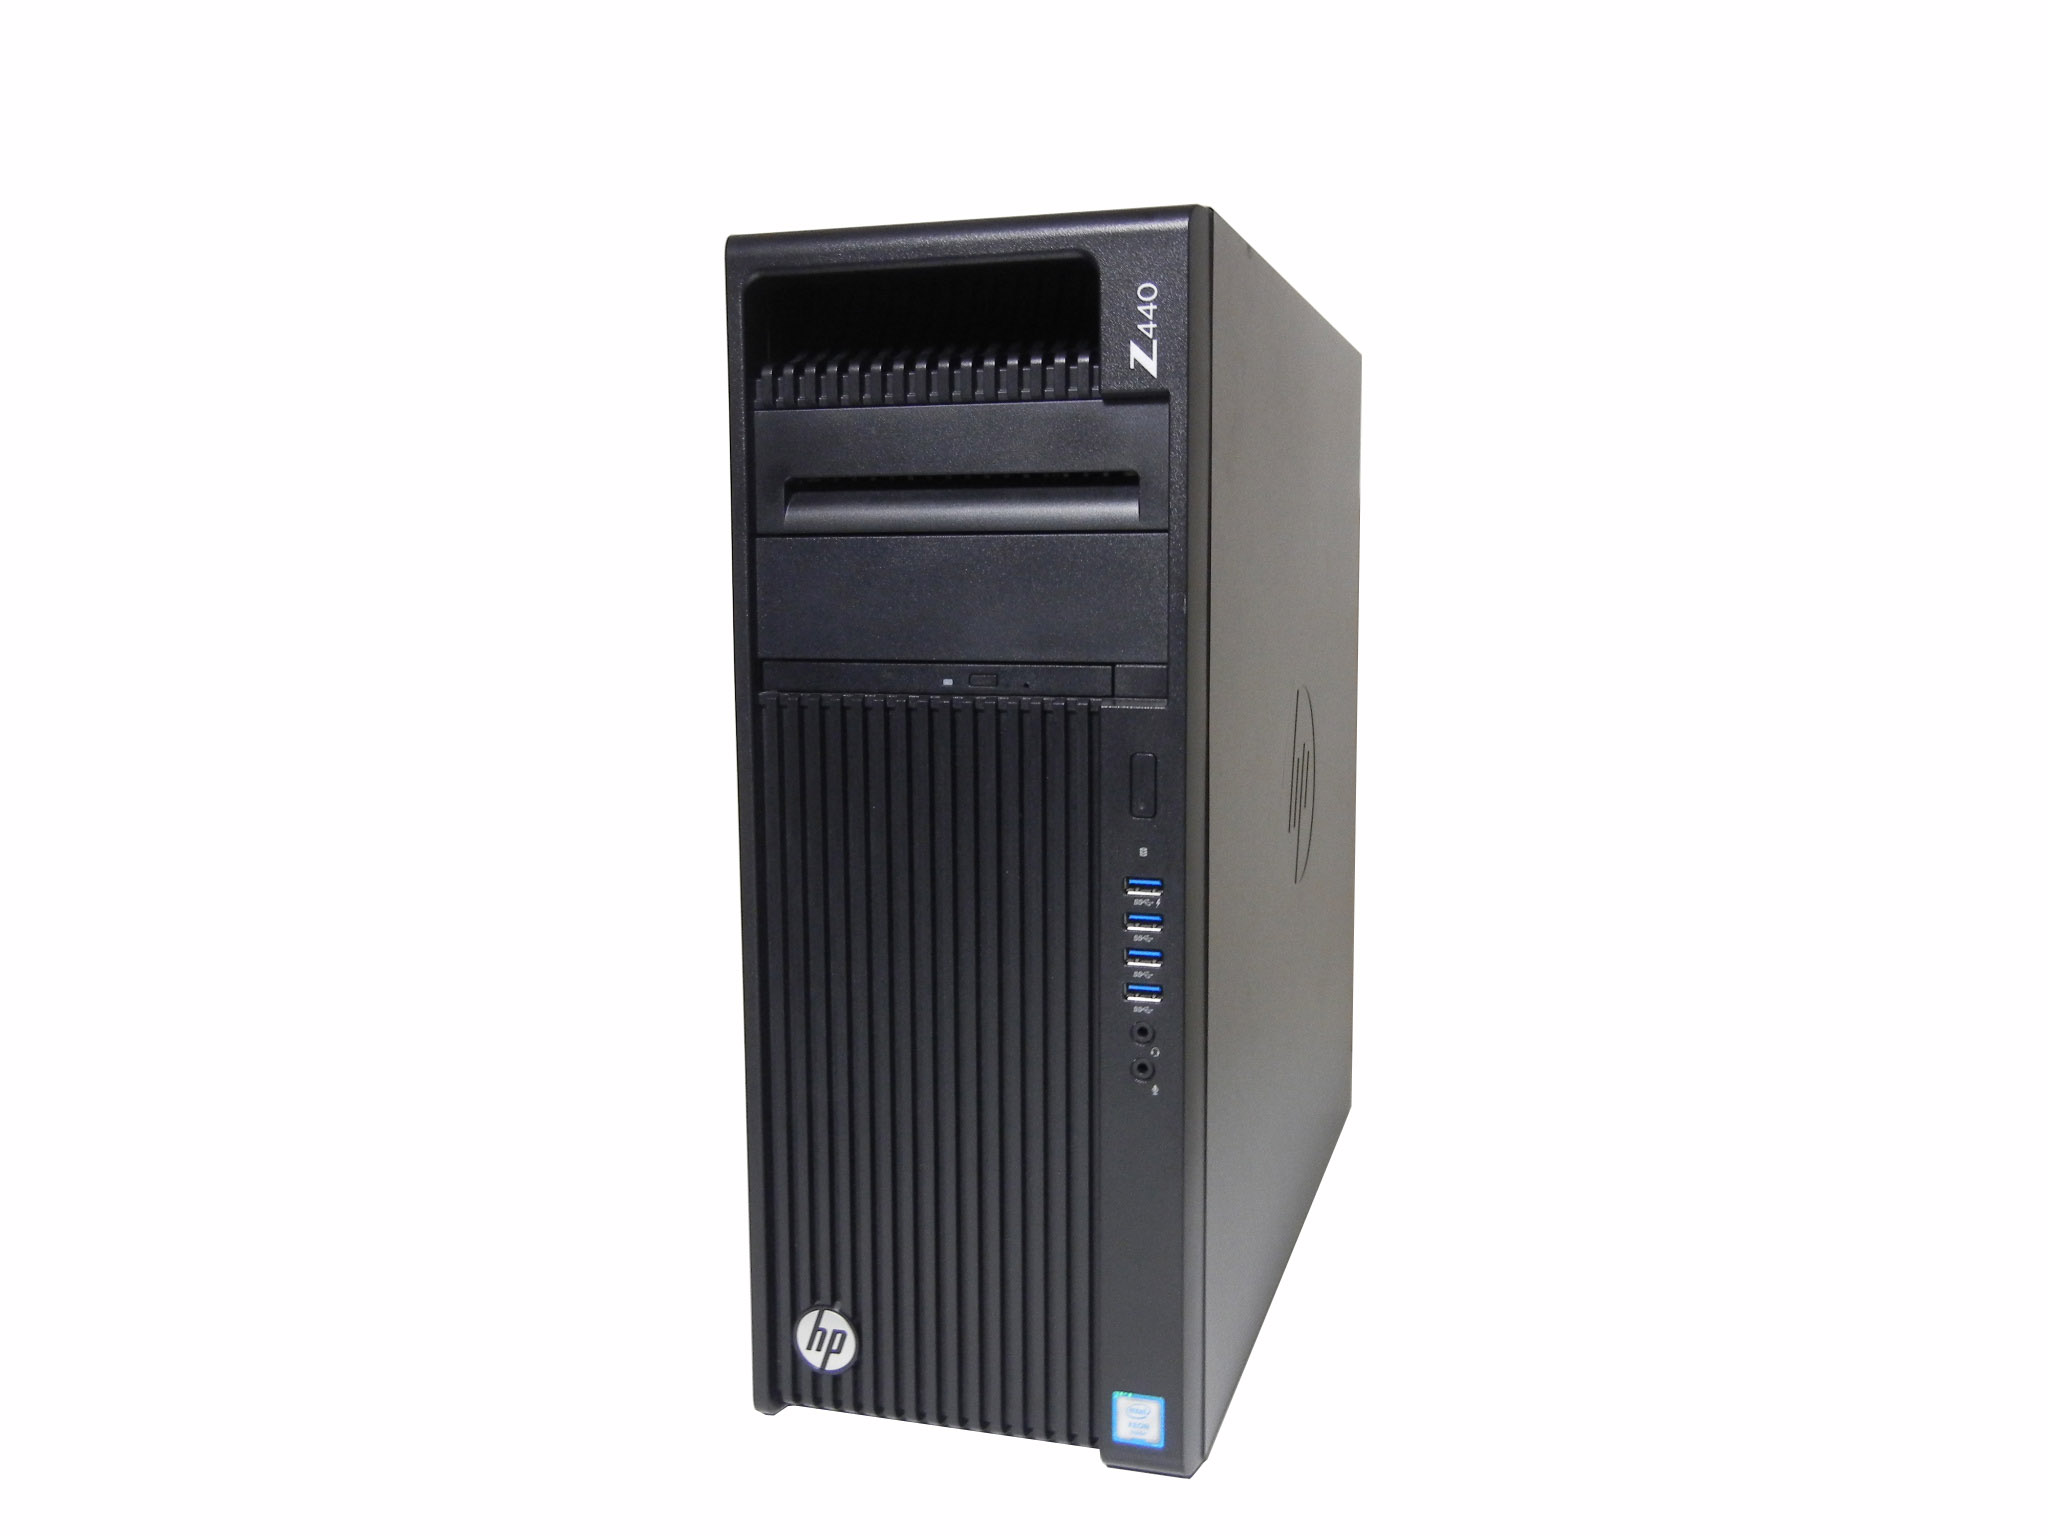 【中古】HP Z440 Workstation 4core Xeon E5-1620 v4 3.50GHz/32GB/500GB x1/GeForce GTX1070 S.A.C